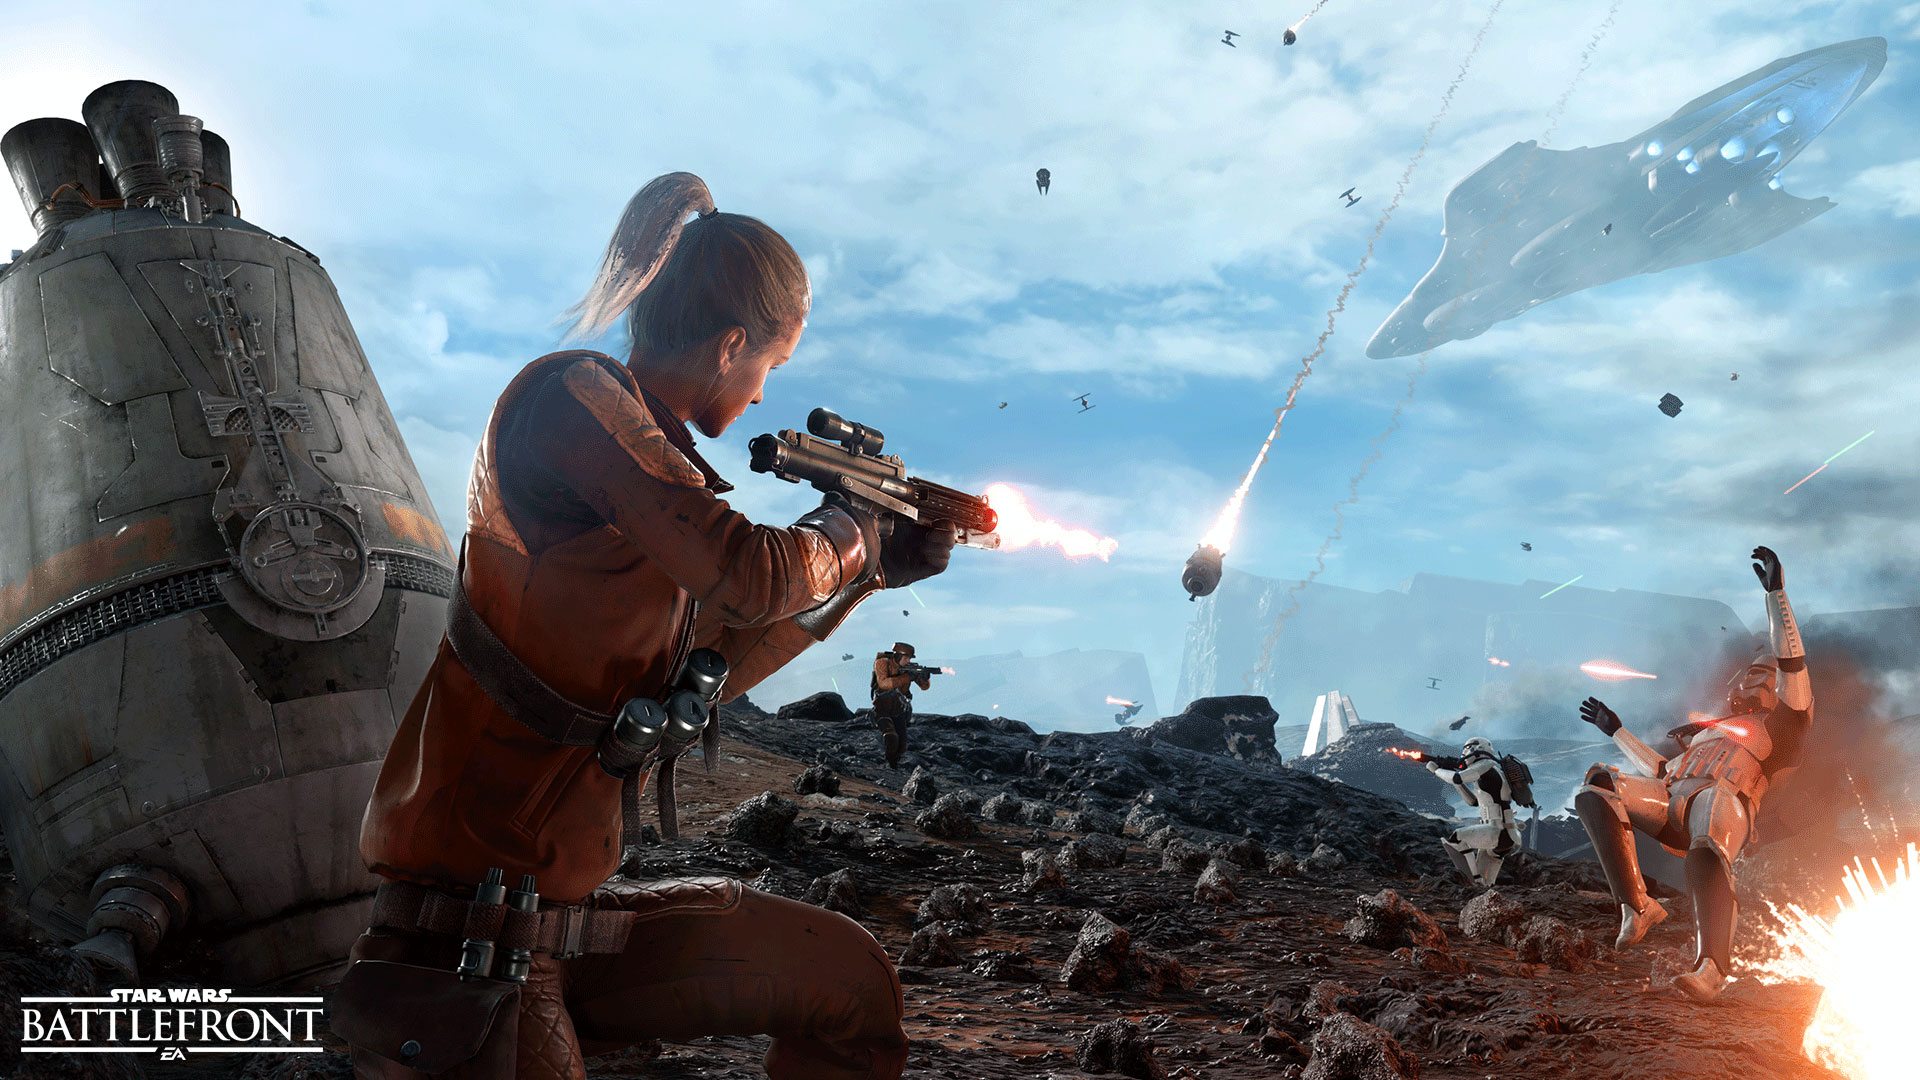 Star Wars: Battlefront - Drop Zone is one of the smaller team modes